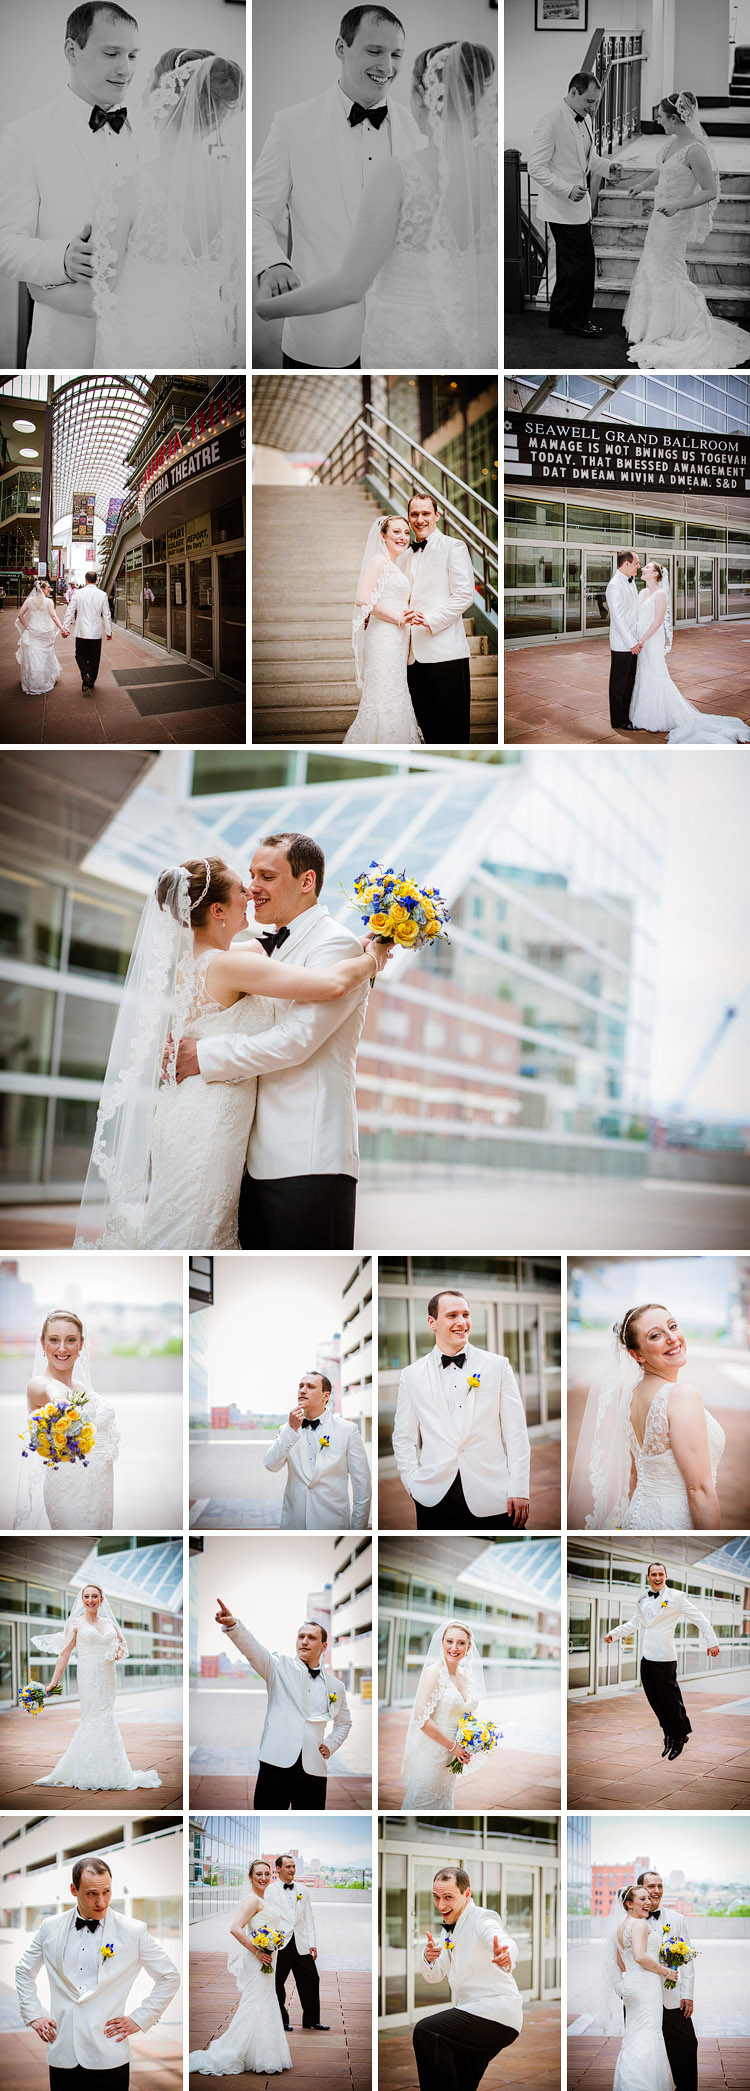 seawell-ballroom-denver-wedding-002